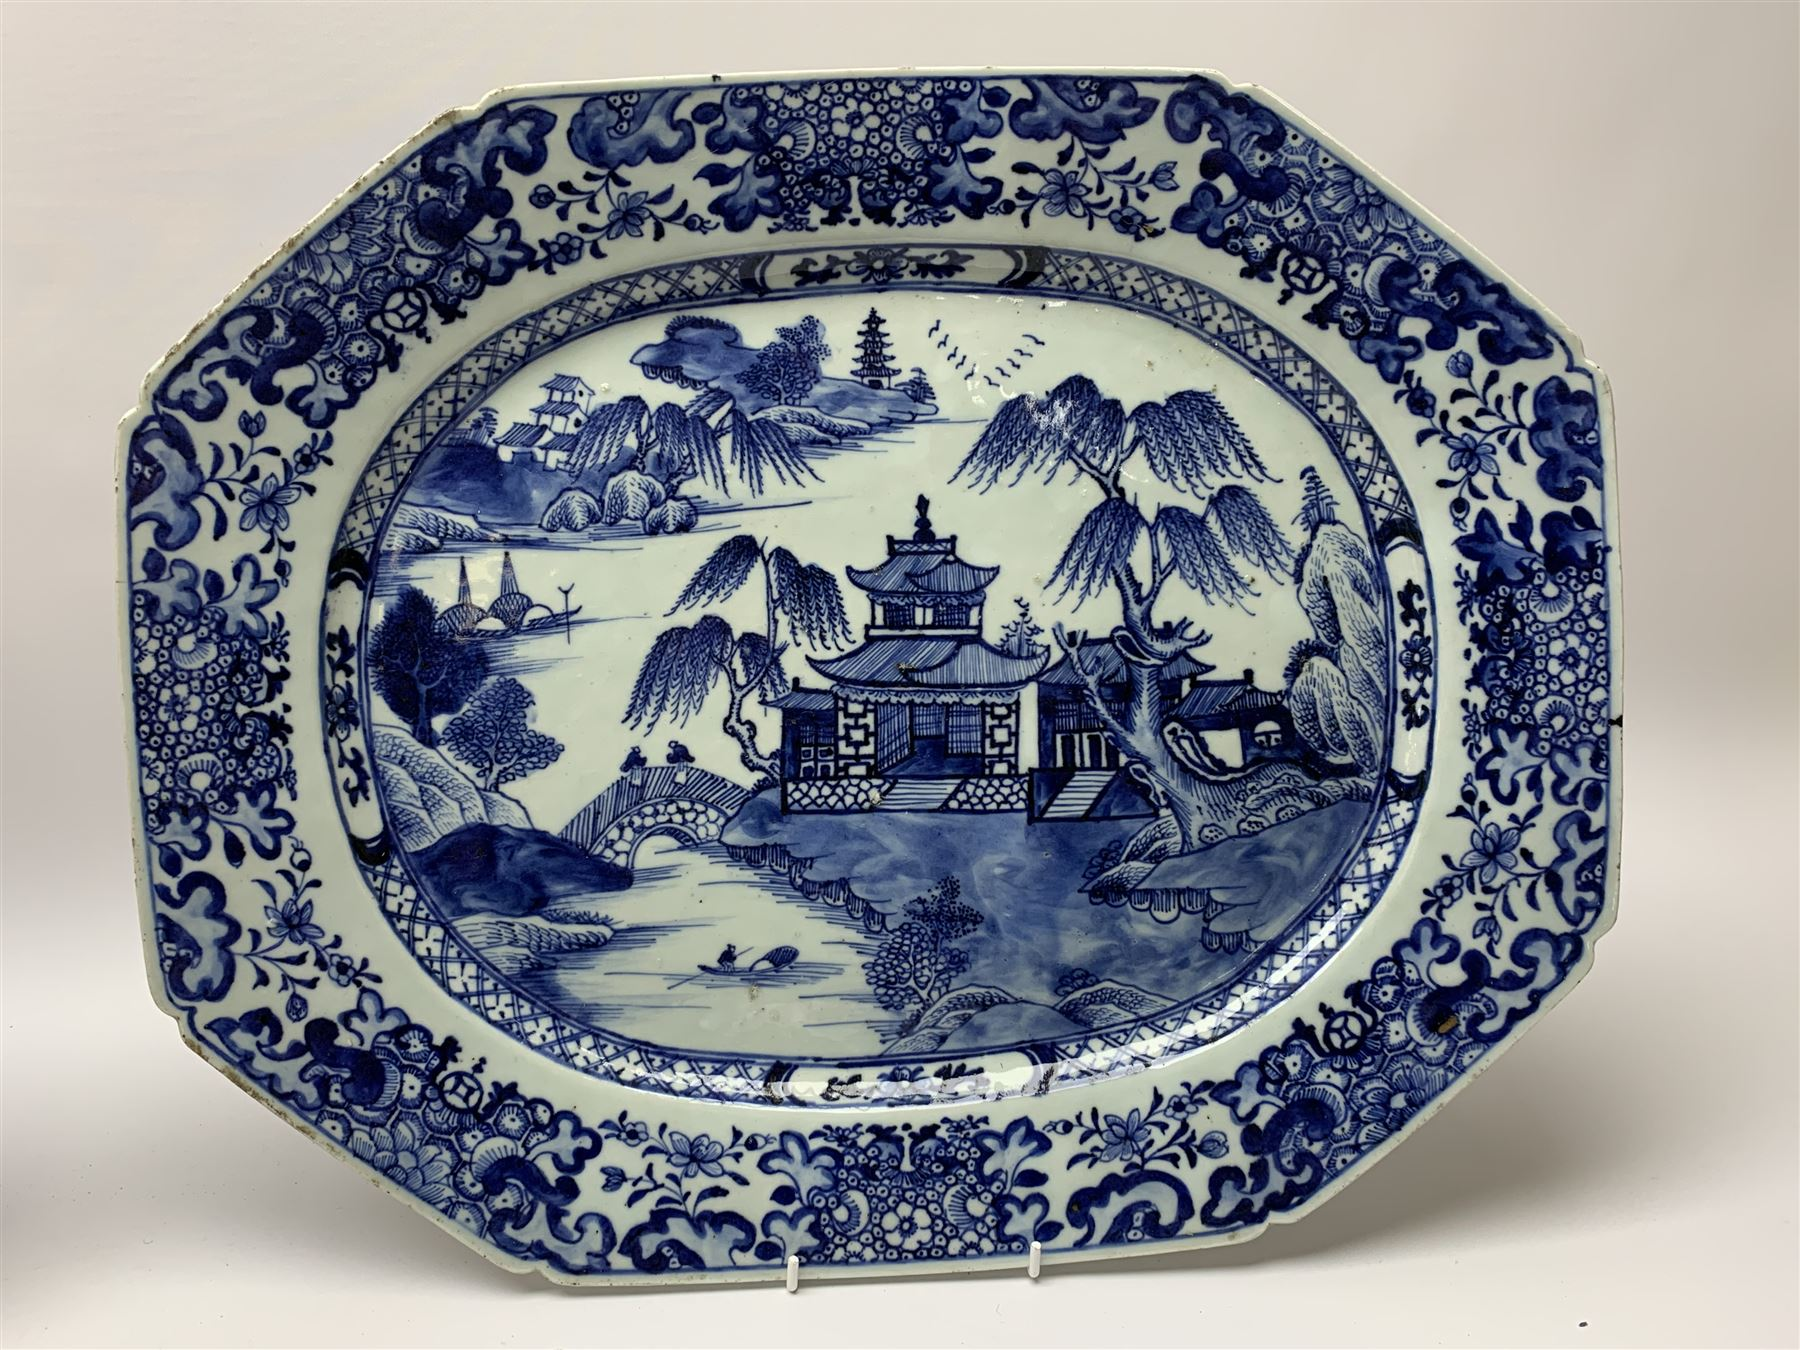 Pair of late 18th/early 19th century Chinese export blue and white platters - Image 3 of 5